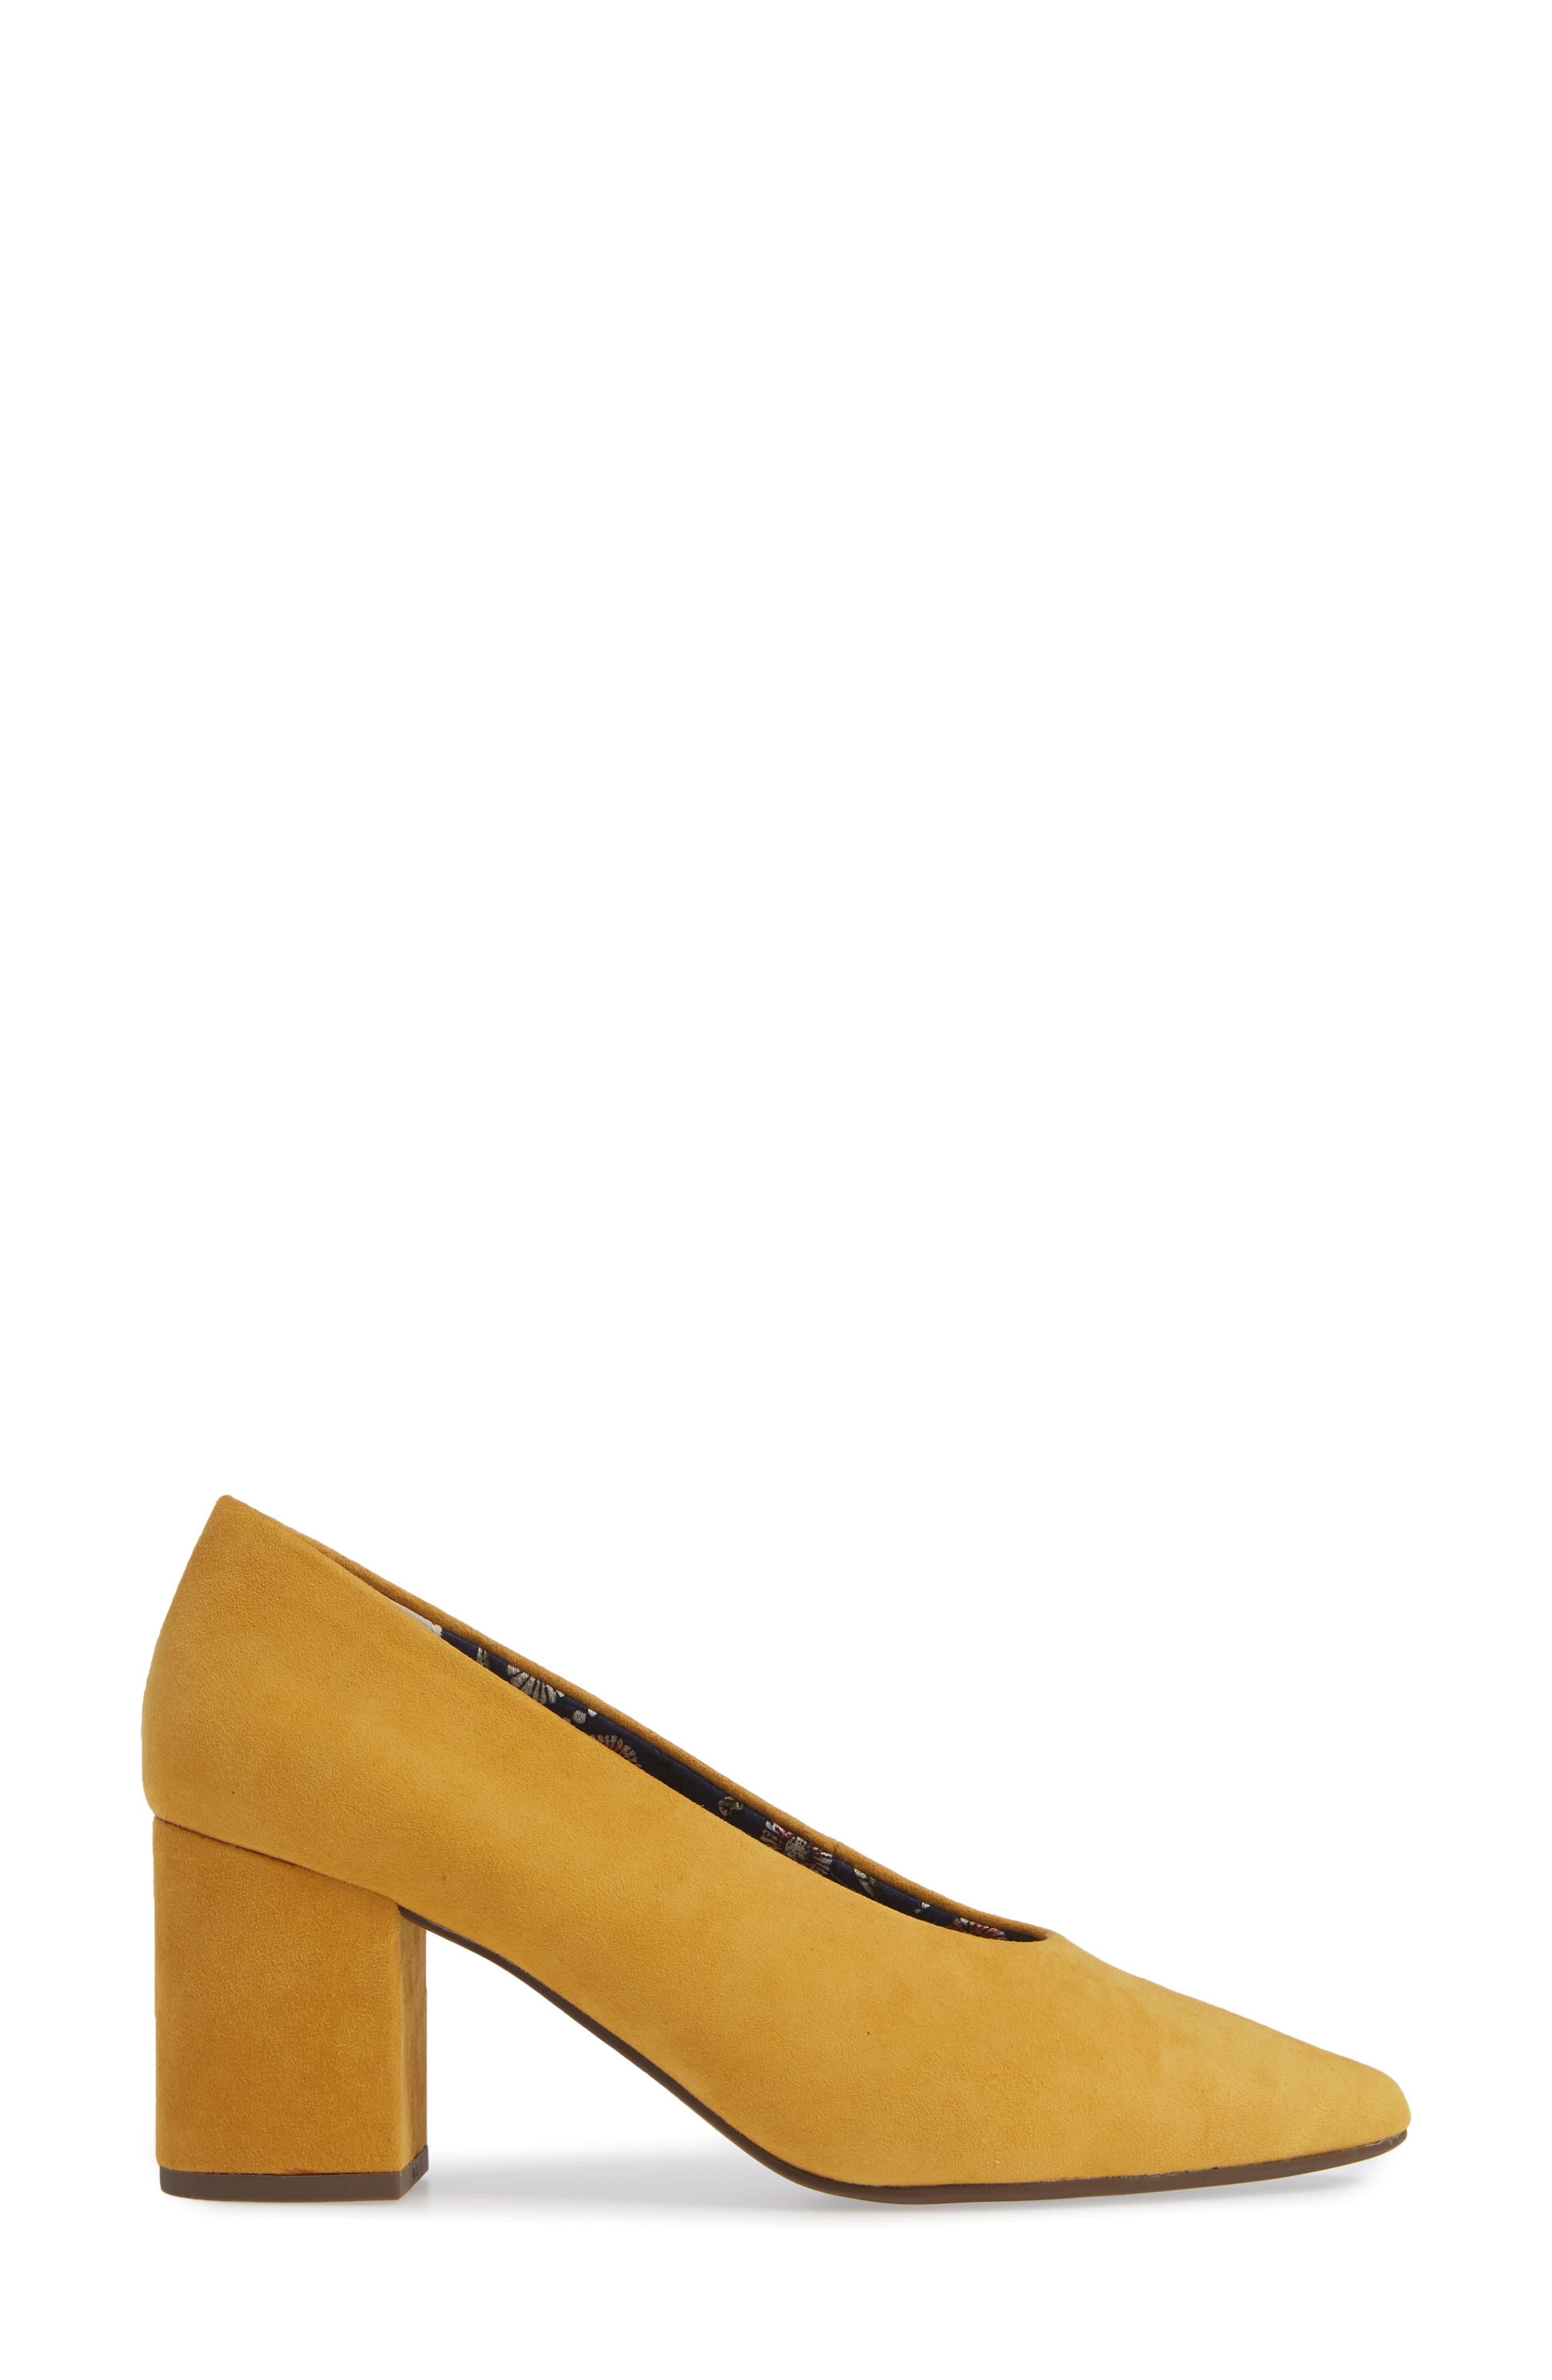 Rehearse Pointy Toe Pump,                             Alternate thumbnail 12, color,